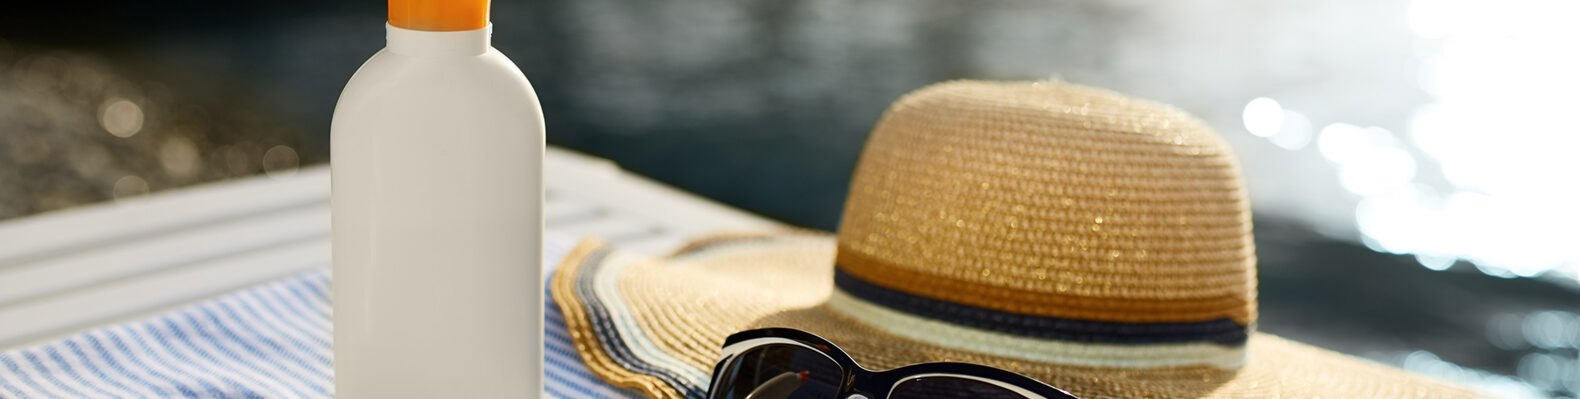 sunscreen, glasses and a hat by water